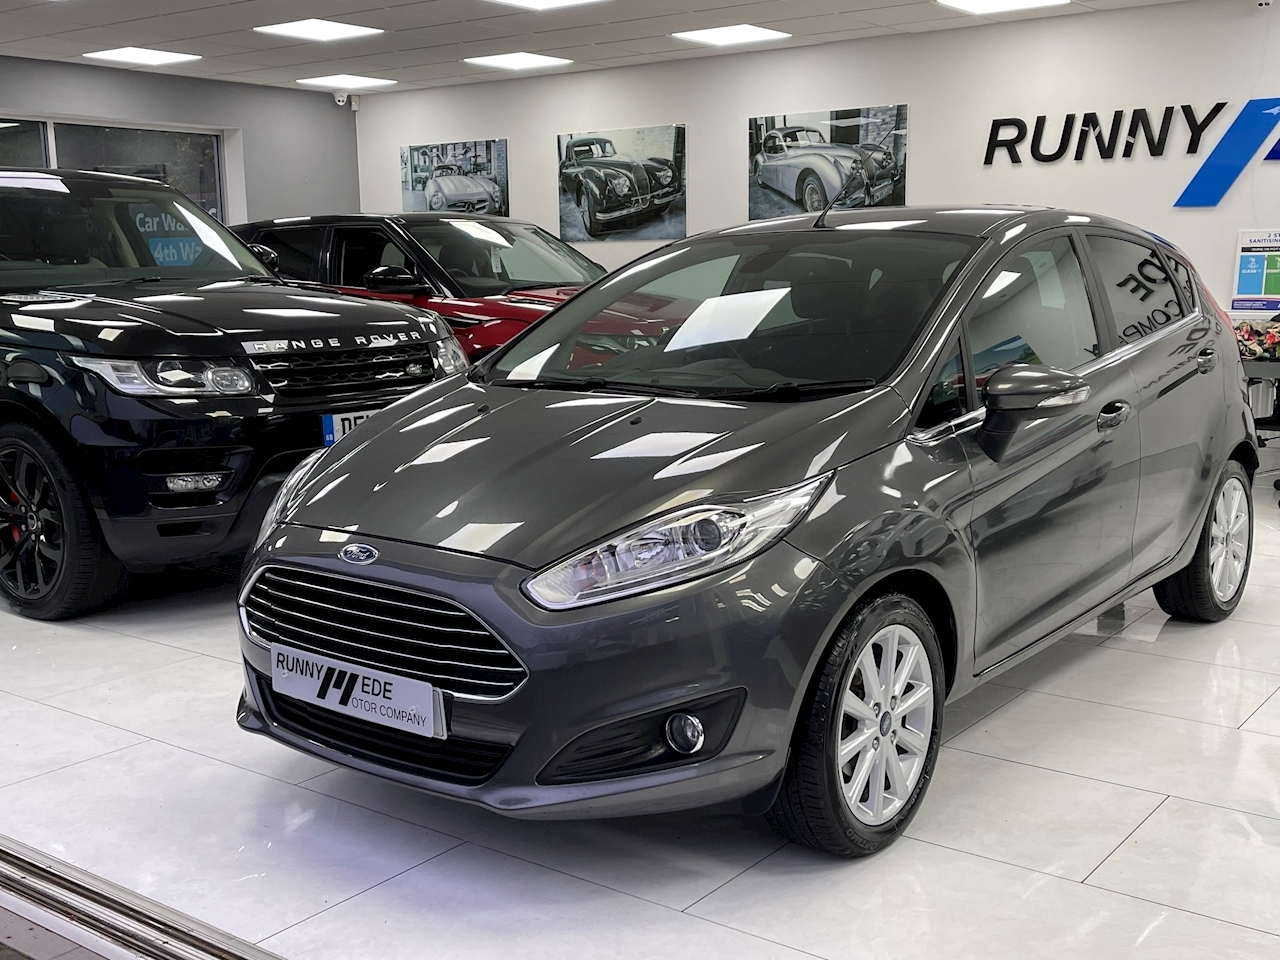 Fiesta Titanium Hatchback 1.0 Manual Petrol